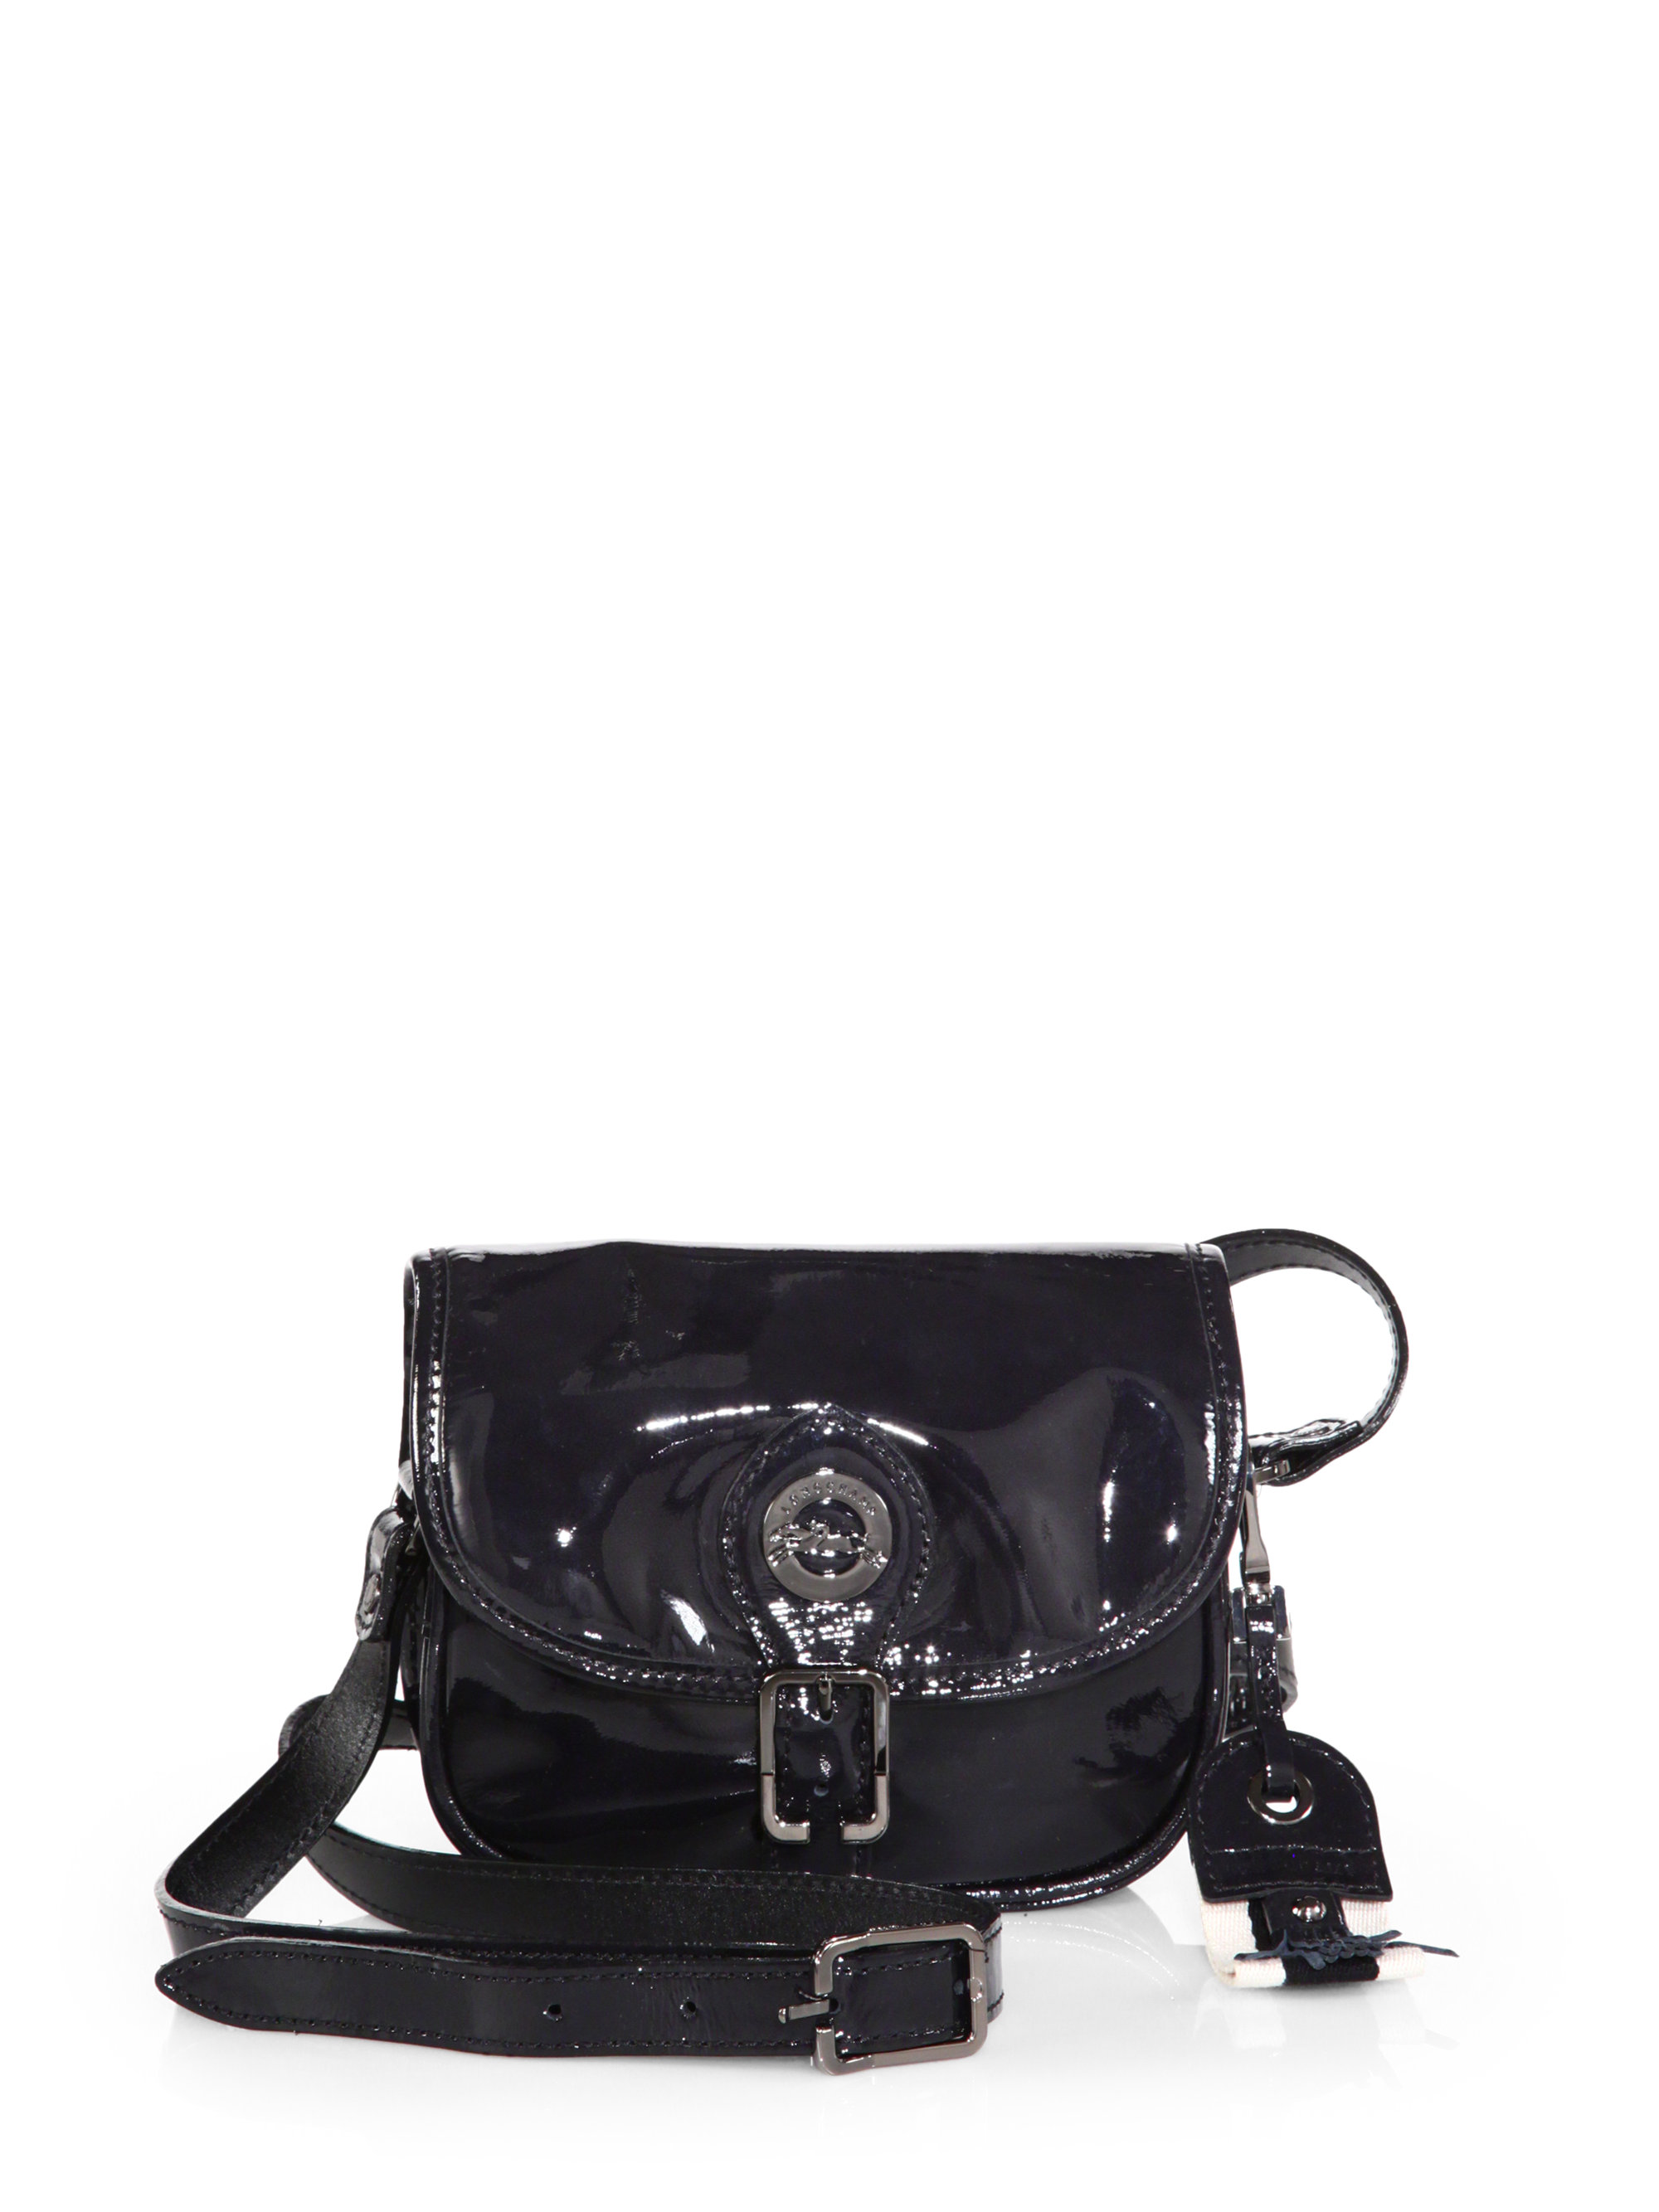 5c8665fa27 Lyst - Longchamp Patent Leather Crossbody Bag in Black